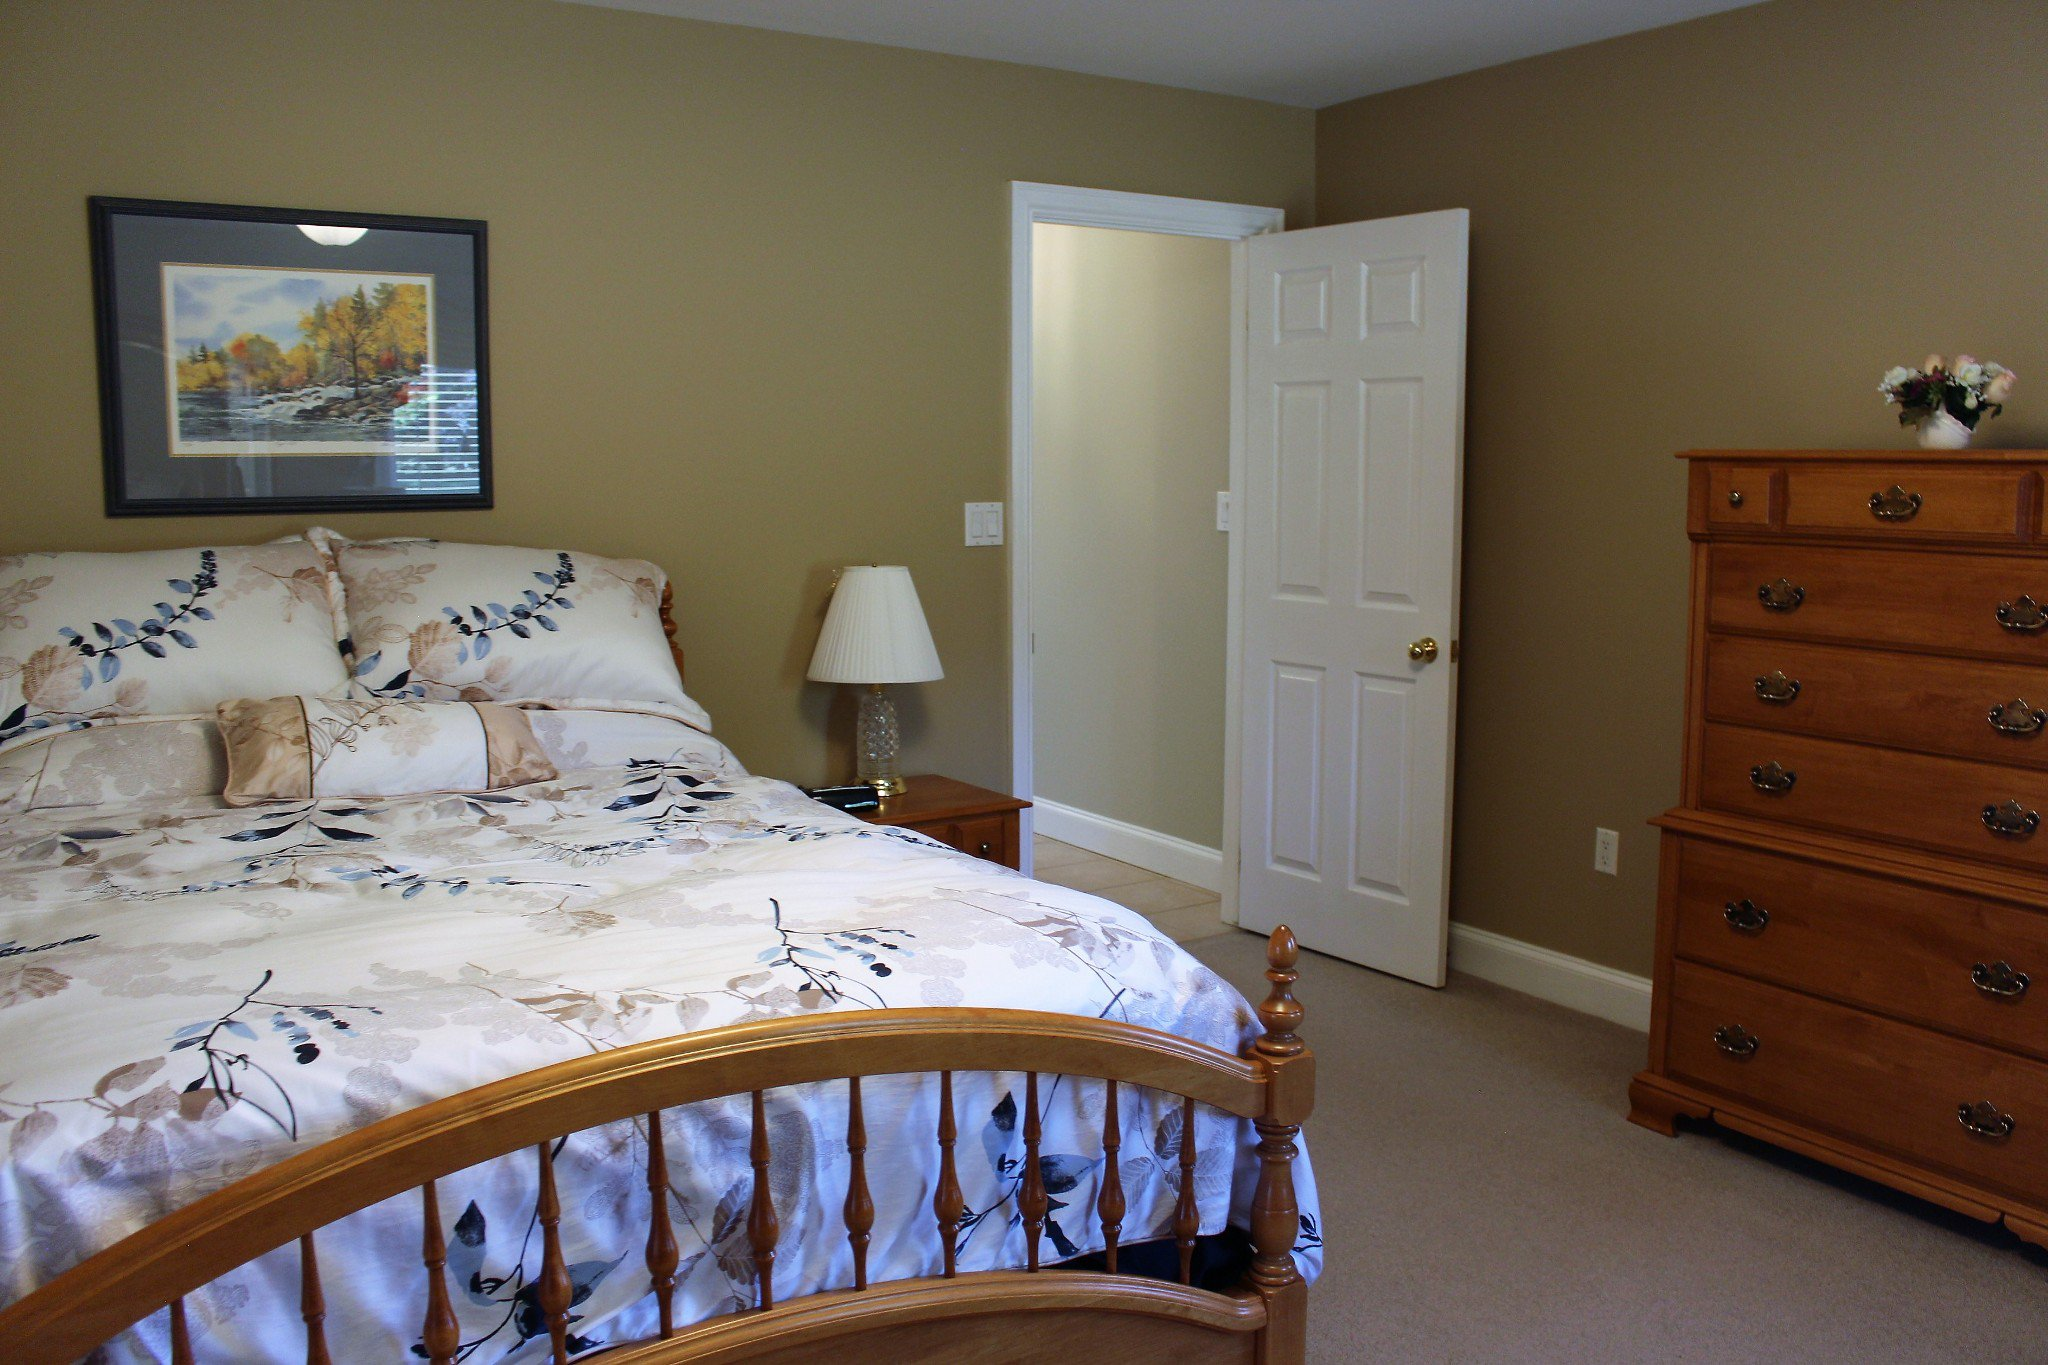 Photo 21: Photos: 159 Nawautin Drive in Grafton: Residential Detached for sale : MLS®# 40012652